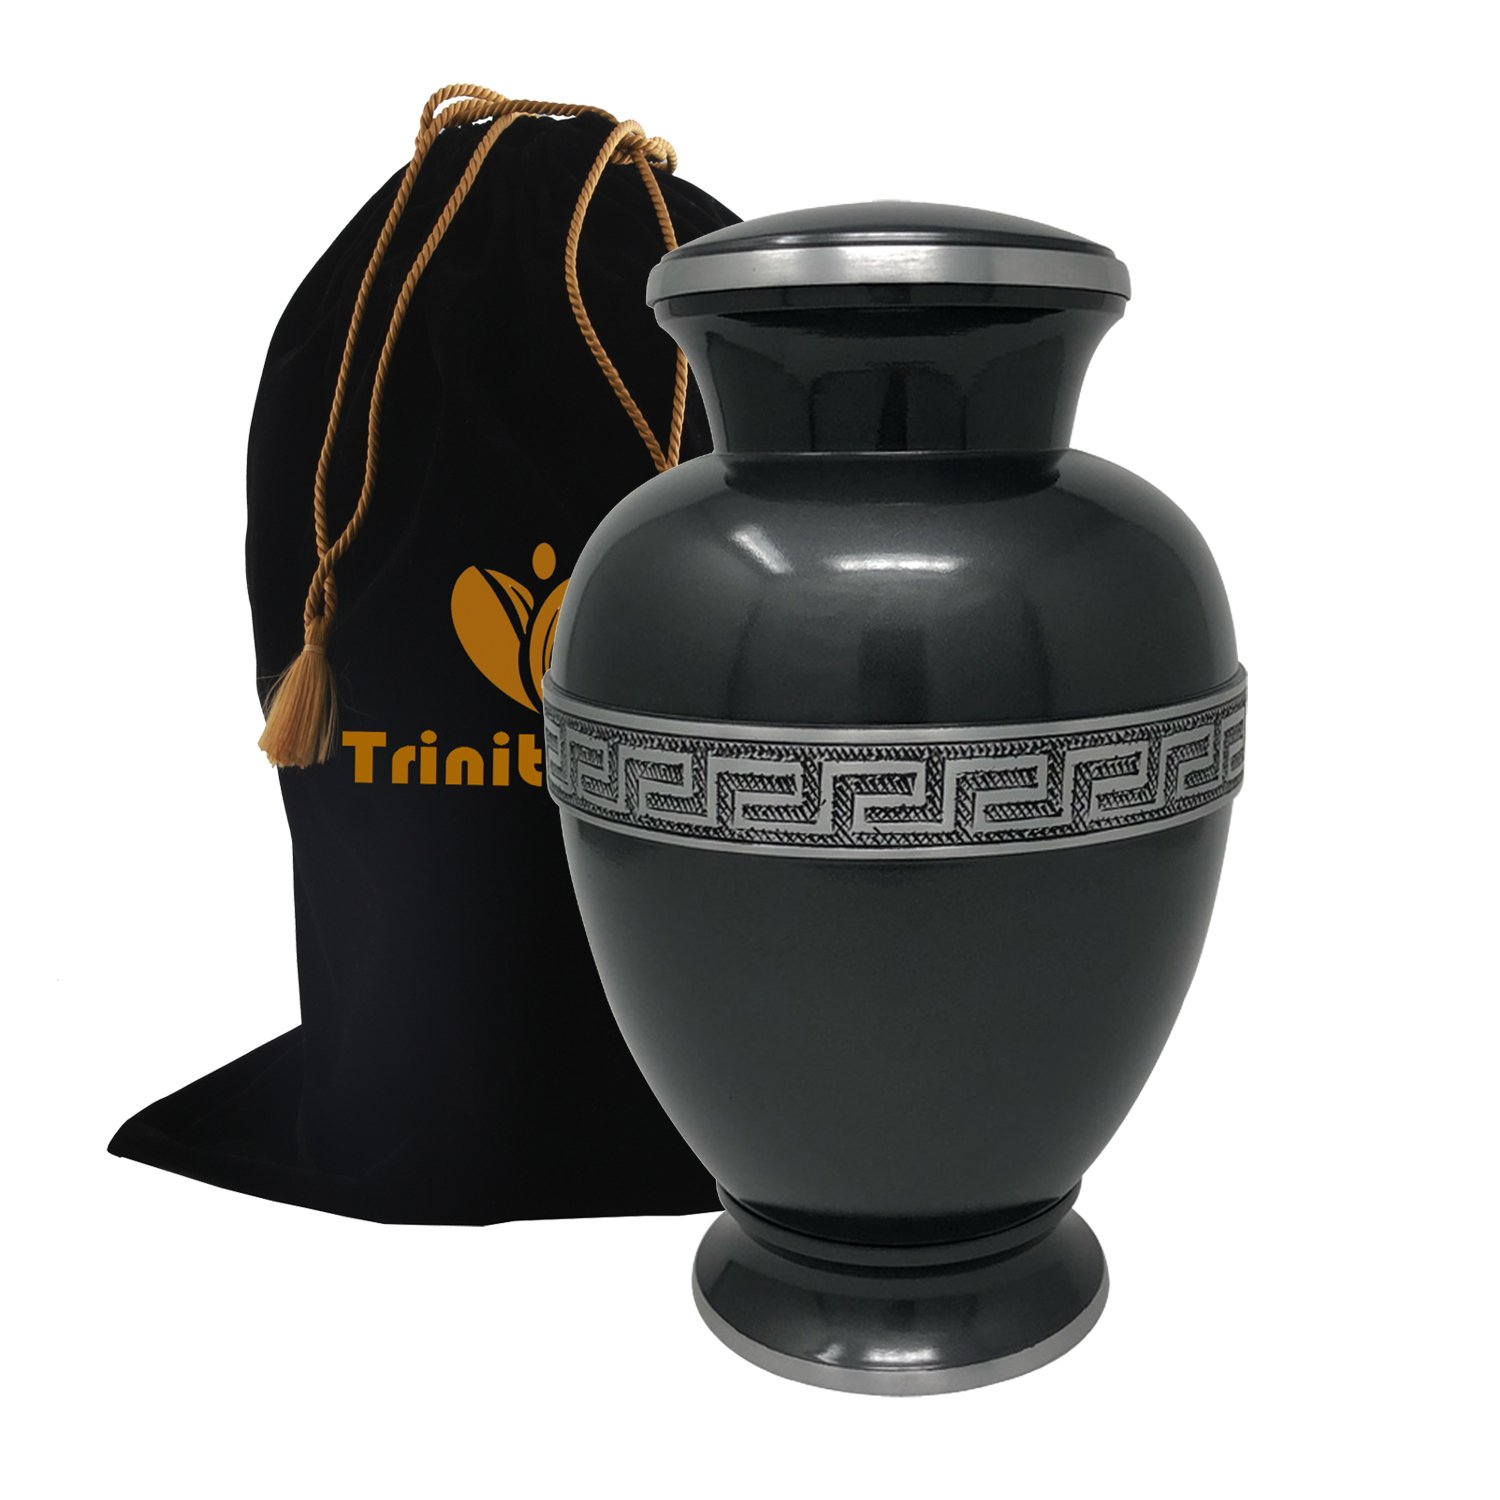 Zeus Sapphire Cremation Urn - 100% Handcrafted Adult Funeral Urn - Solid Metal Large Urn - Affordable Urn for Human Ashes with Free Velvet Bag (Grey)